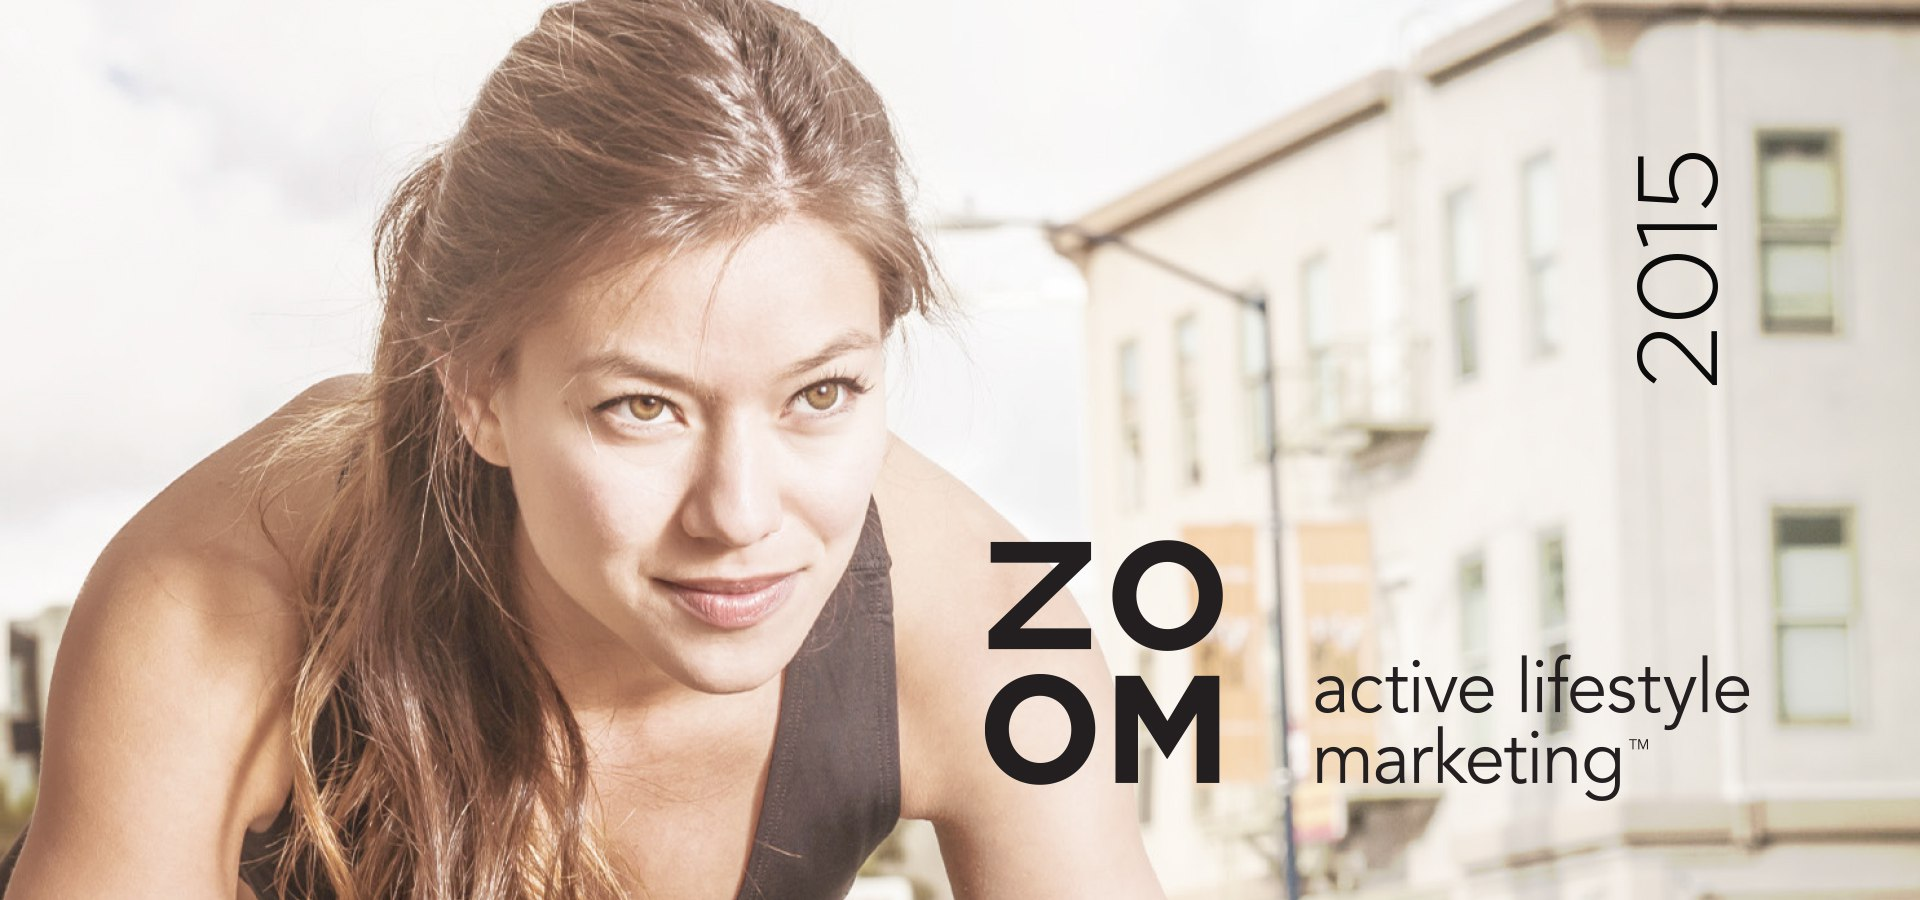 Zoom Media Cover Woman Logo 2015